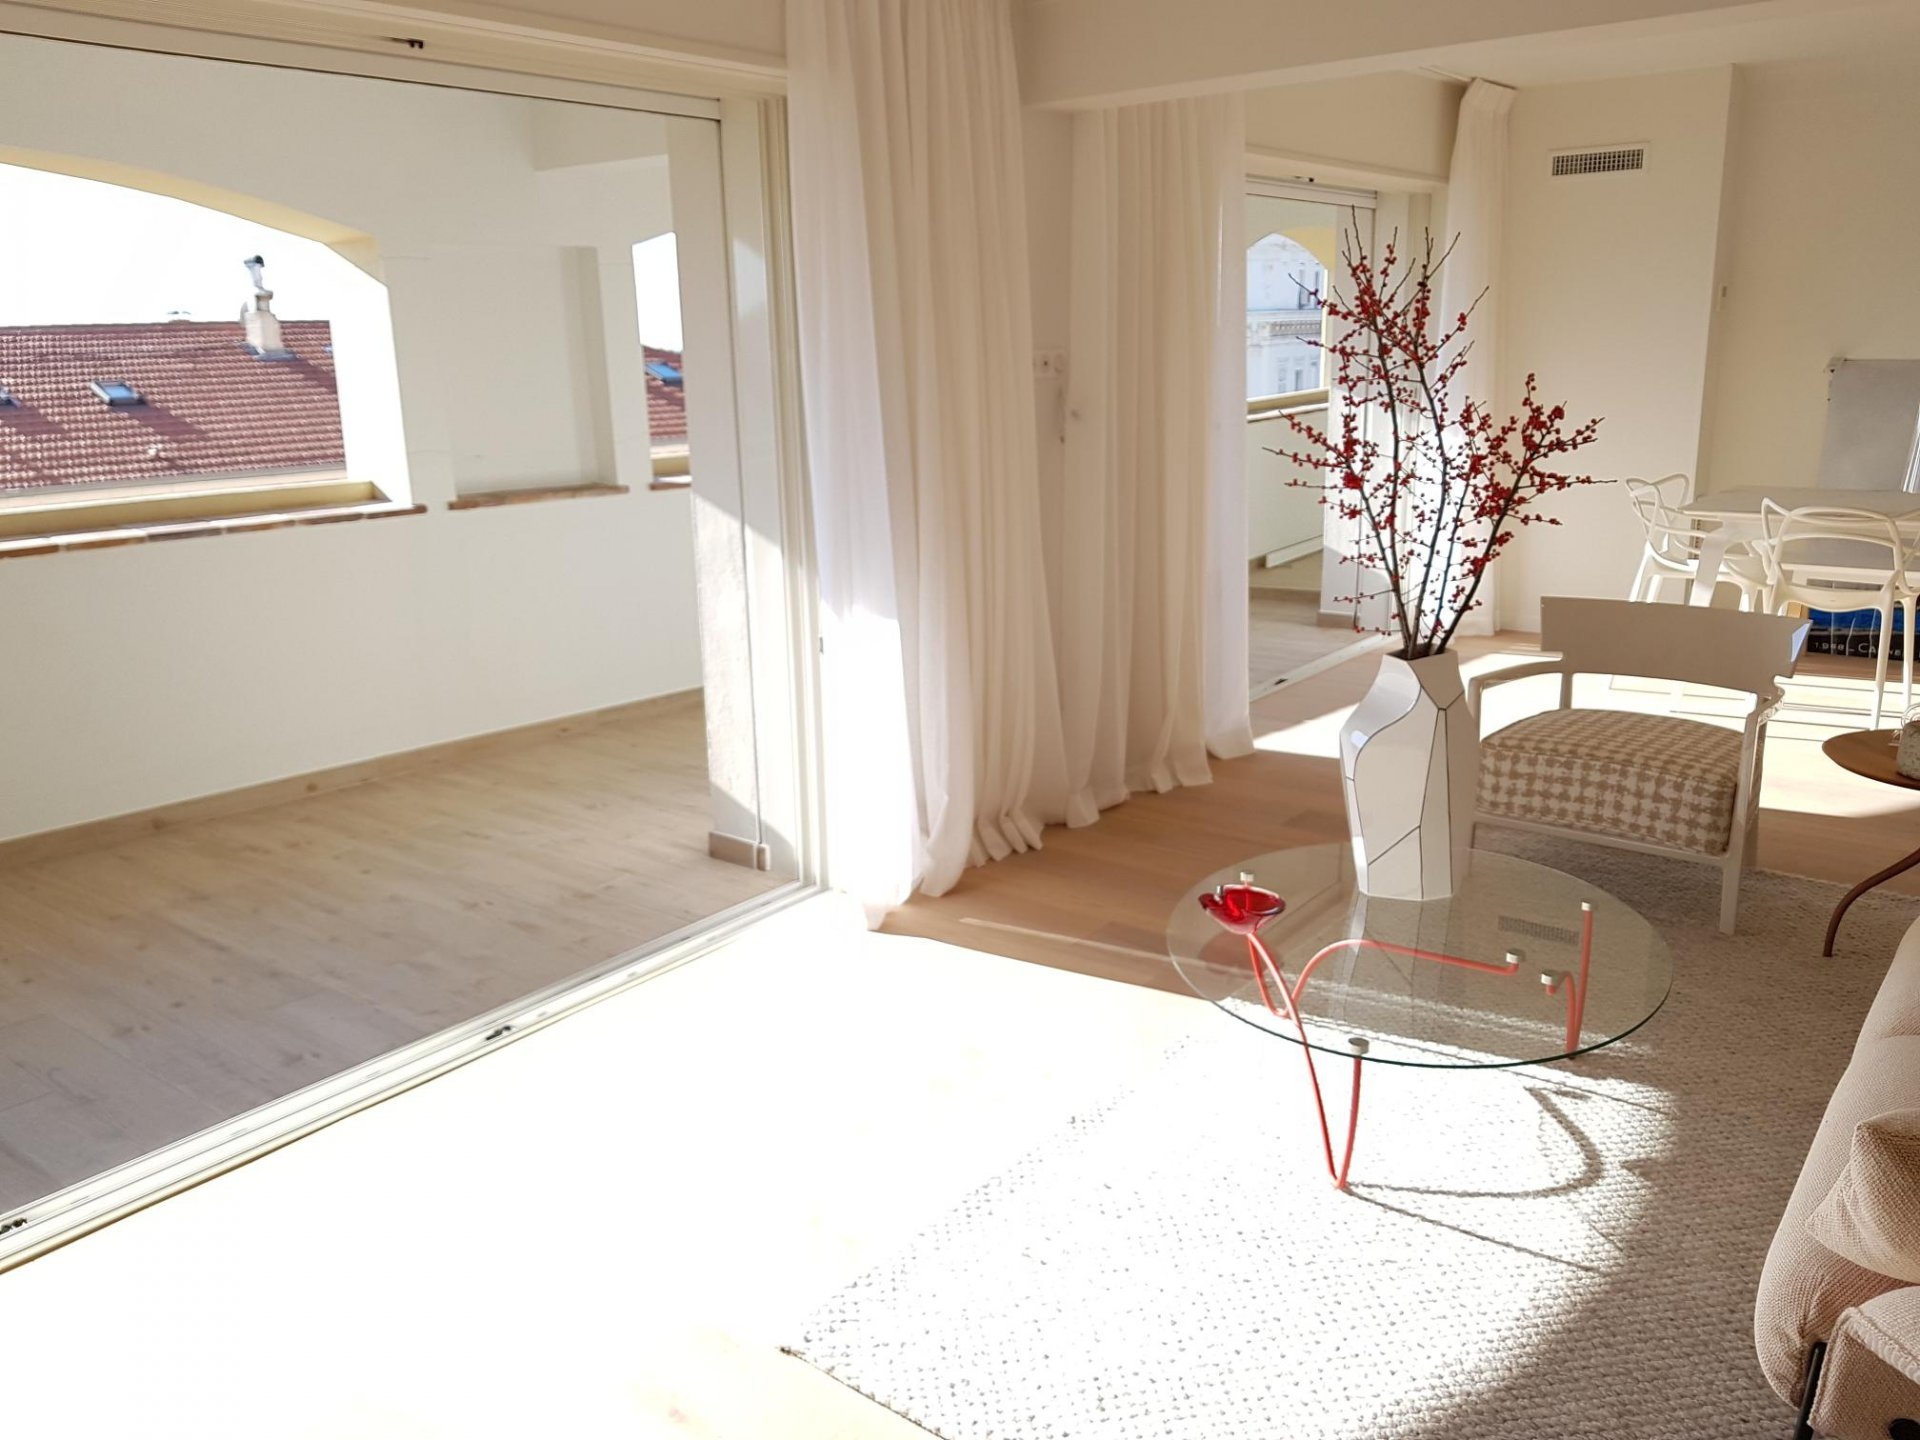 Apartment 2 bedroom Cannes close Palais des festivals